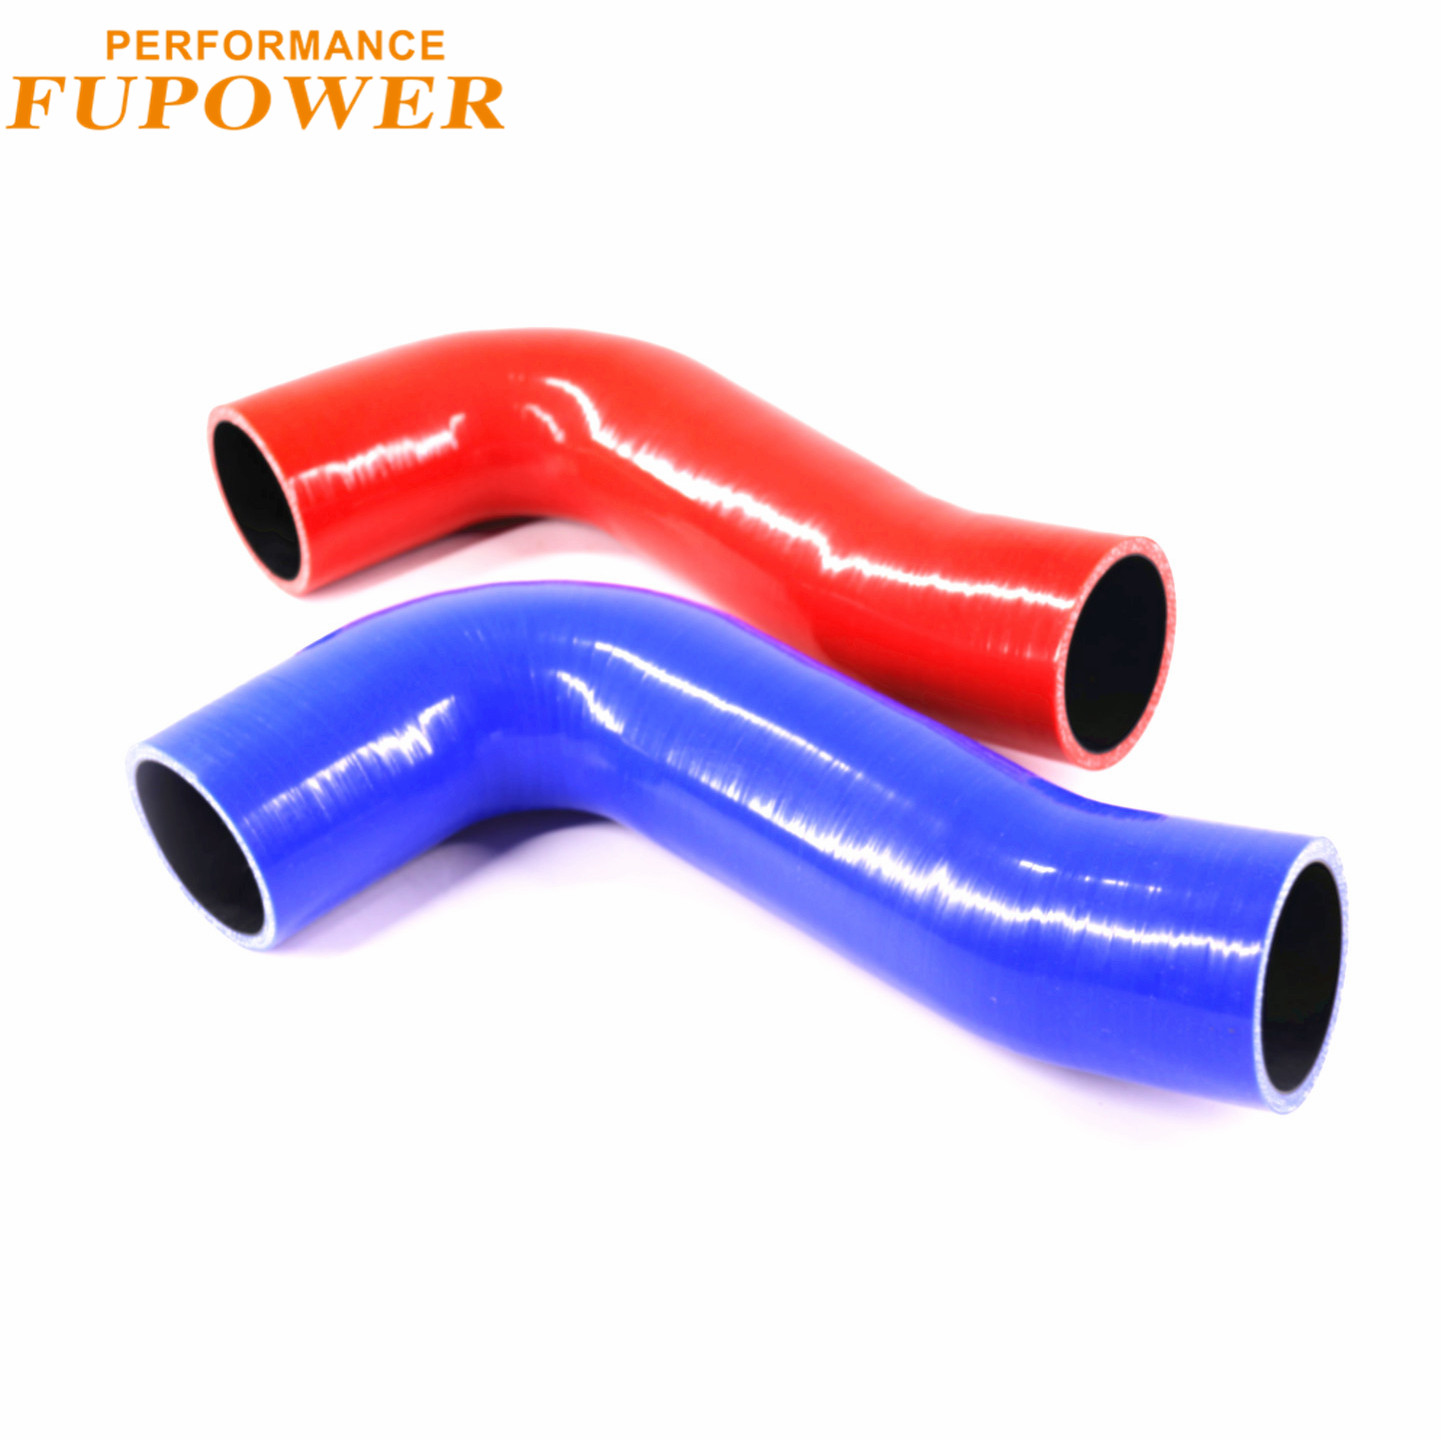 Turbo intercooler <strong>hose</strong> for Toyota Hilux 1kd 2005 - 2008 intercooler piping Cooling Air Intake System Silicone Turbo <strong>Hose</strong> Kit